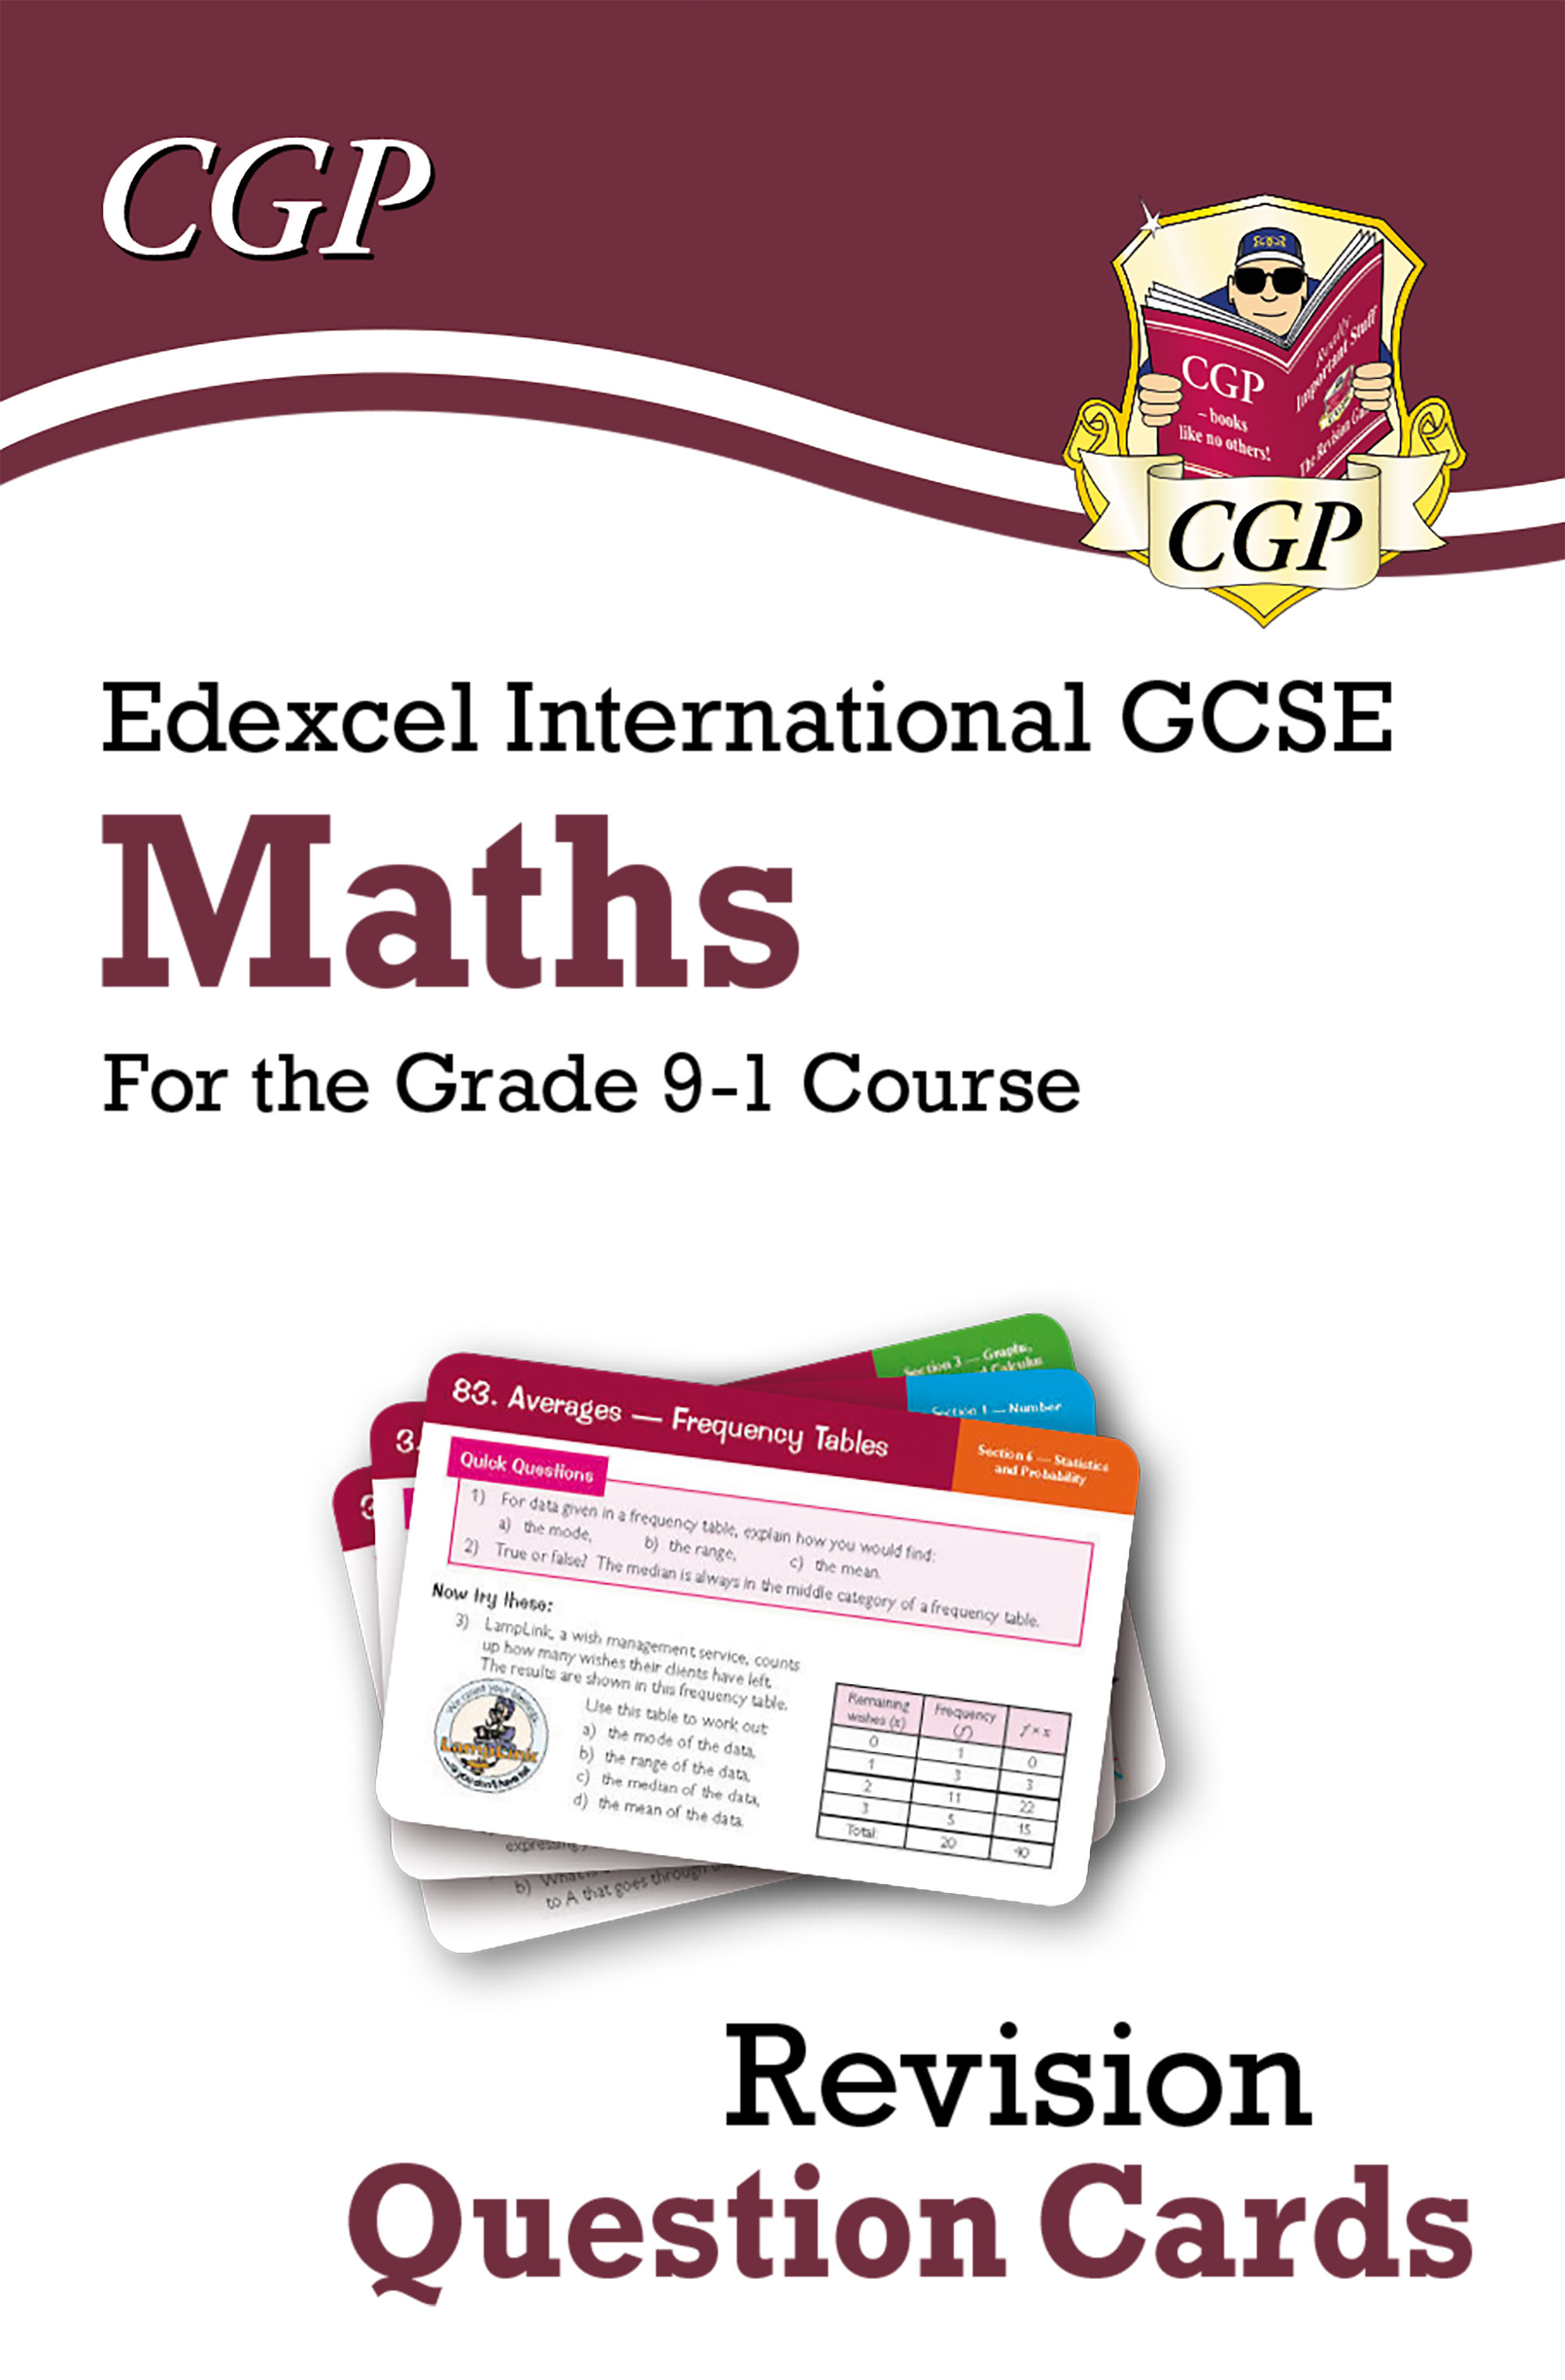 MEFI41D - New Grade 9-1 Edexcel International GCSE Maths: Revision Question Cards Online Edition